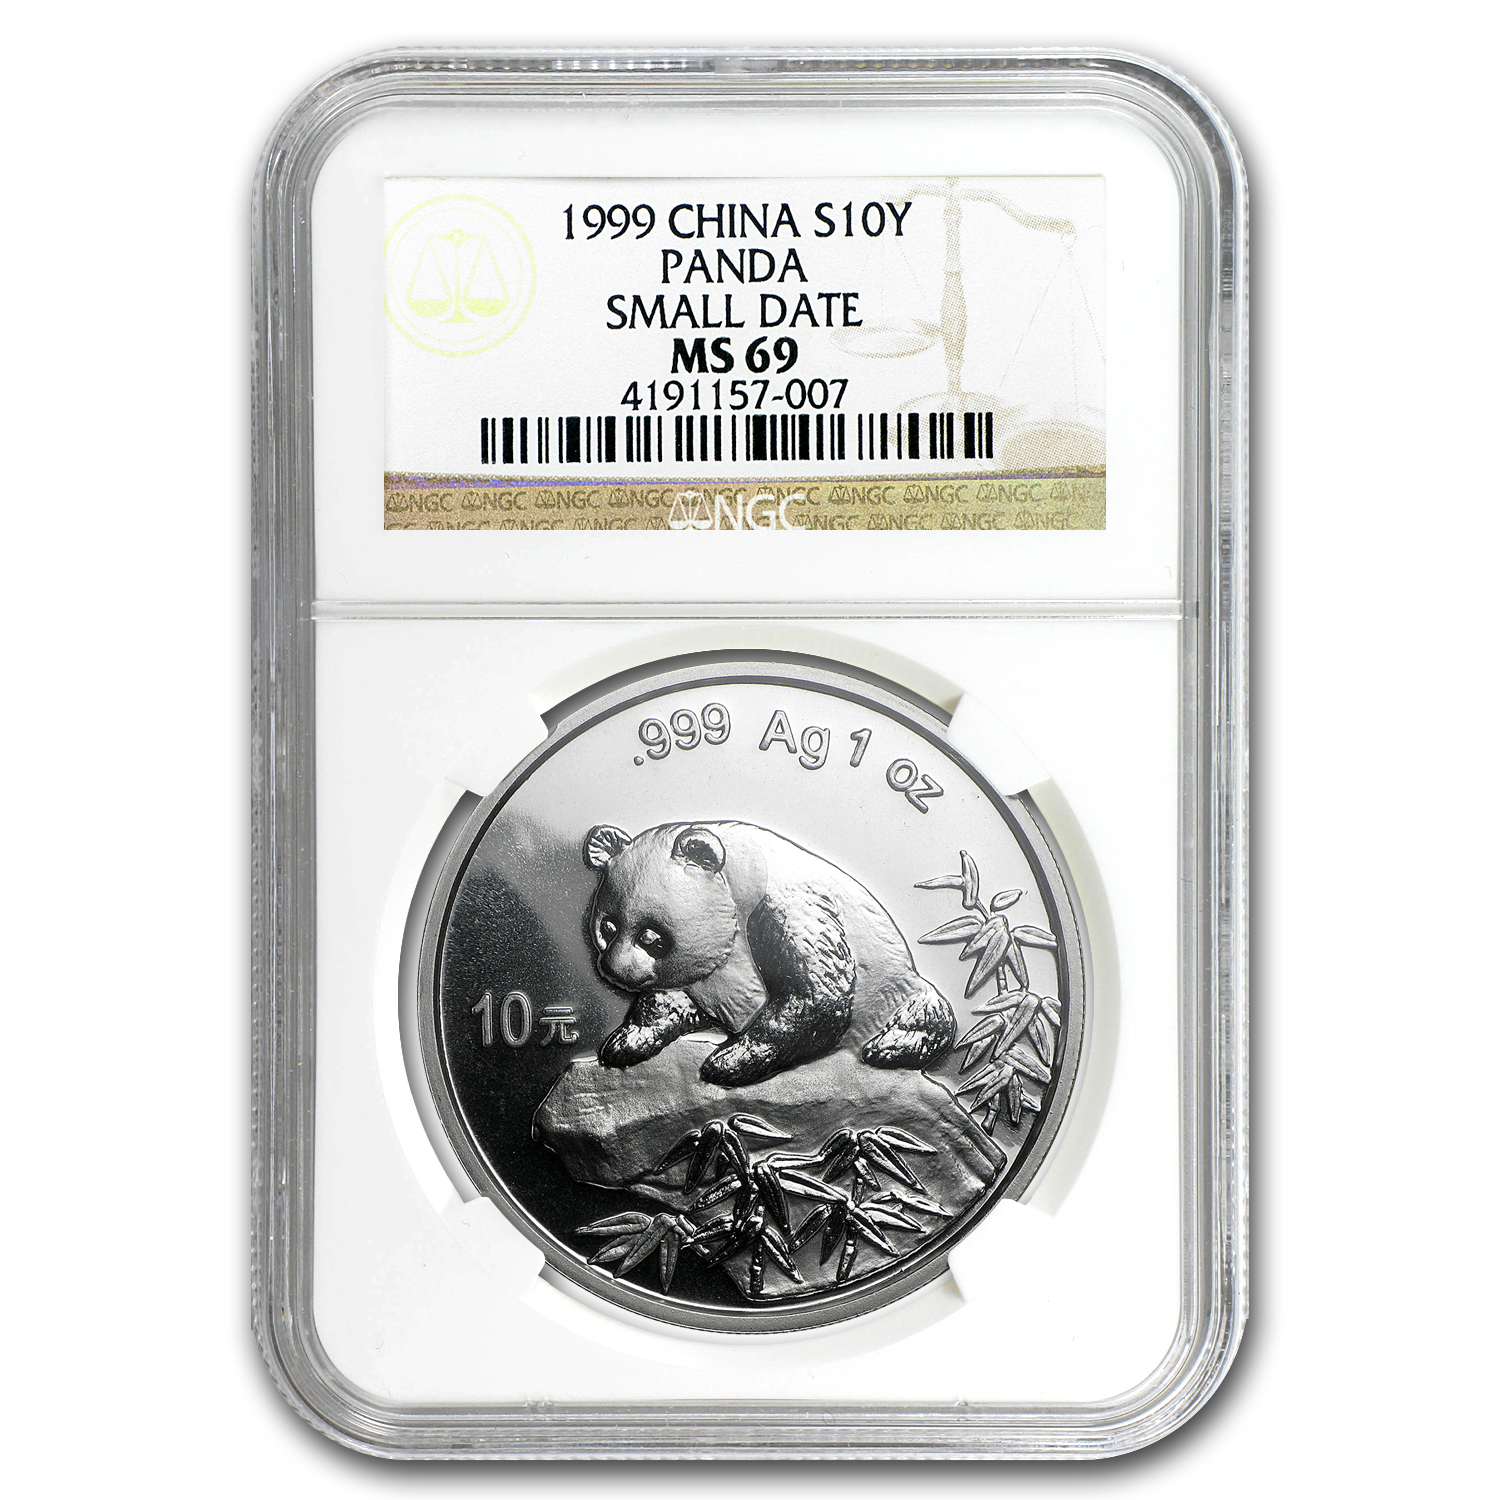 1999 China 1 oz Silver Panda MS-69 NGC (Small Date)